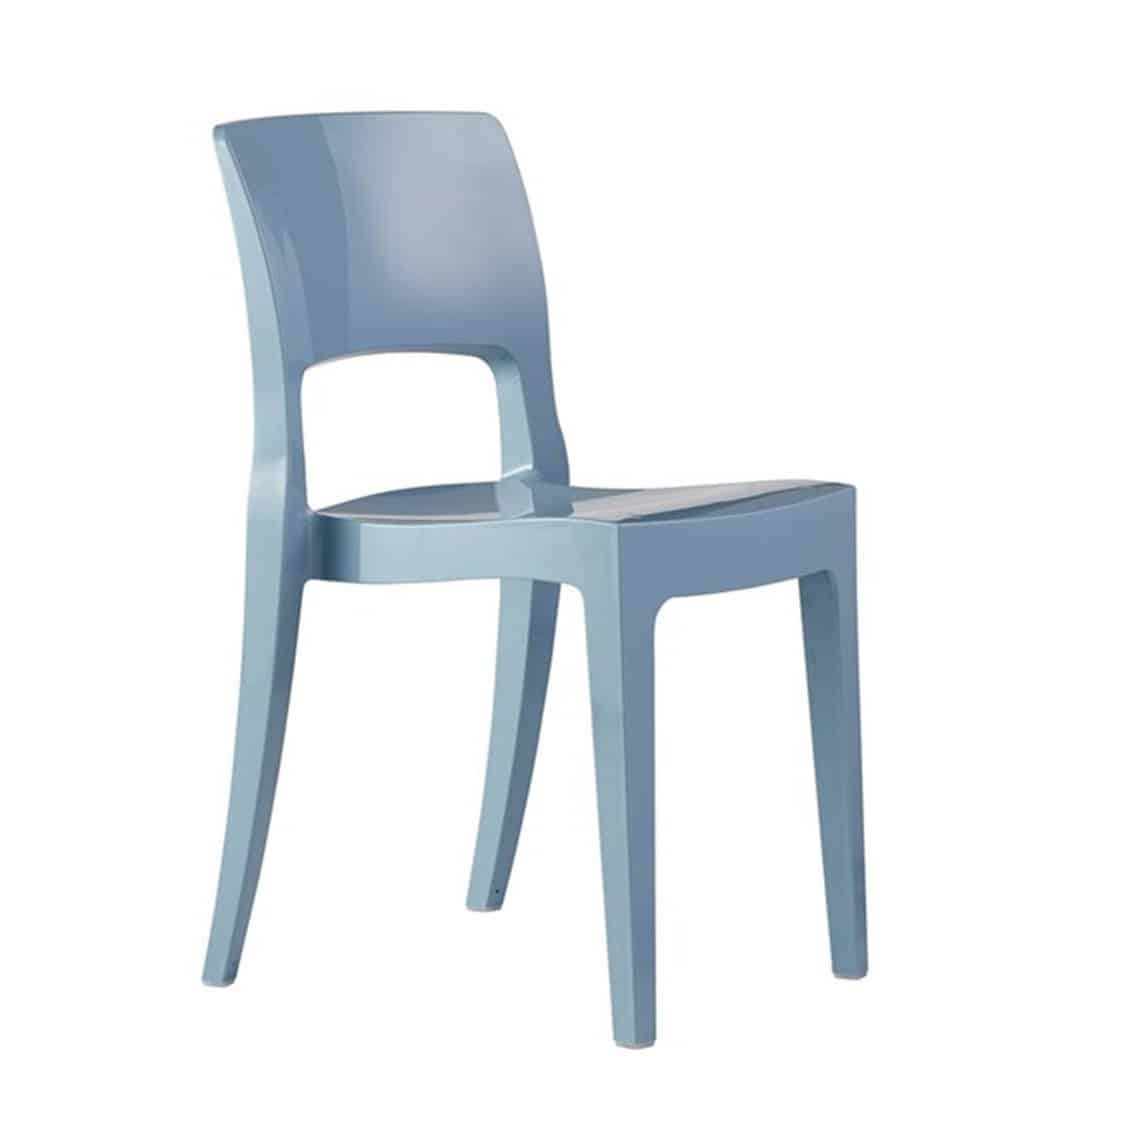 Ivy side chair Scab Design Isy Outdoor contact chair Blue